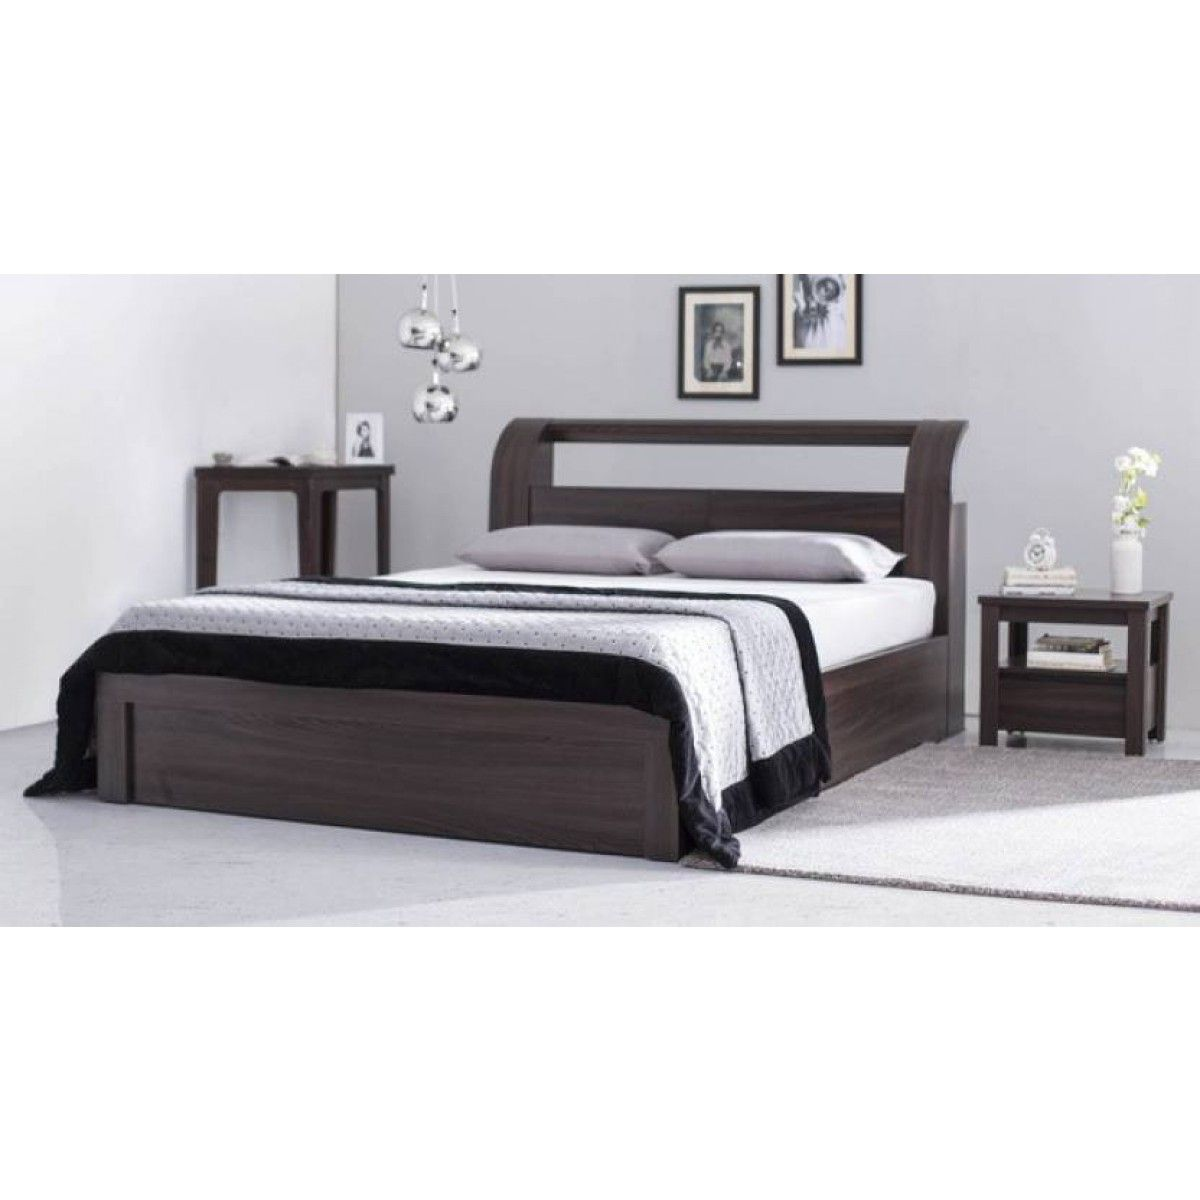 Best Place To Buy Bedroom Sets: Sutherland Hydraulic Crafted King Size Bed In 2019